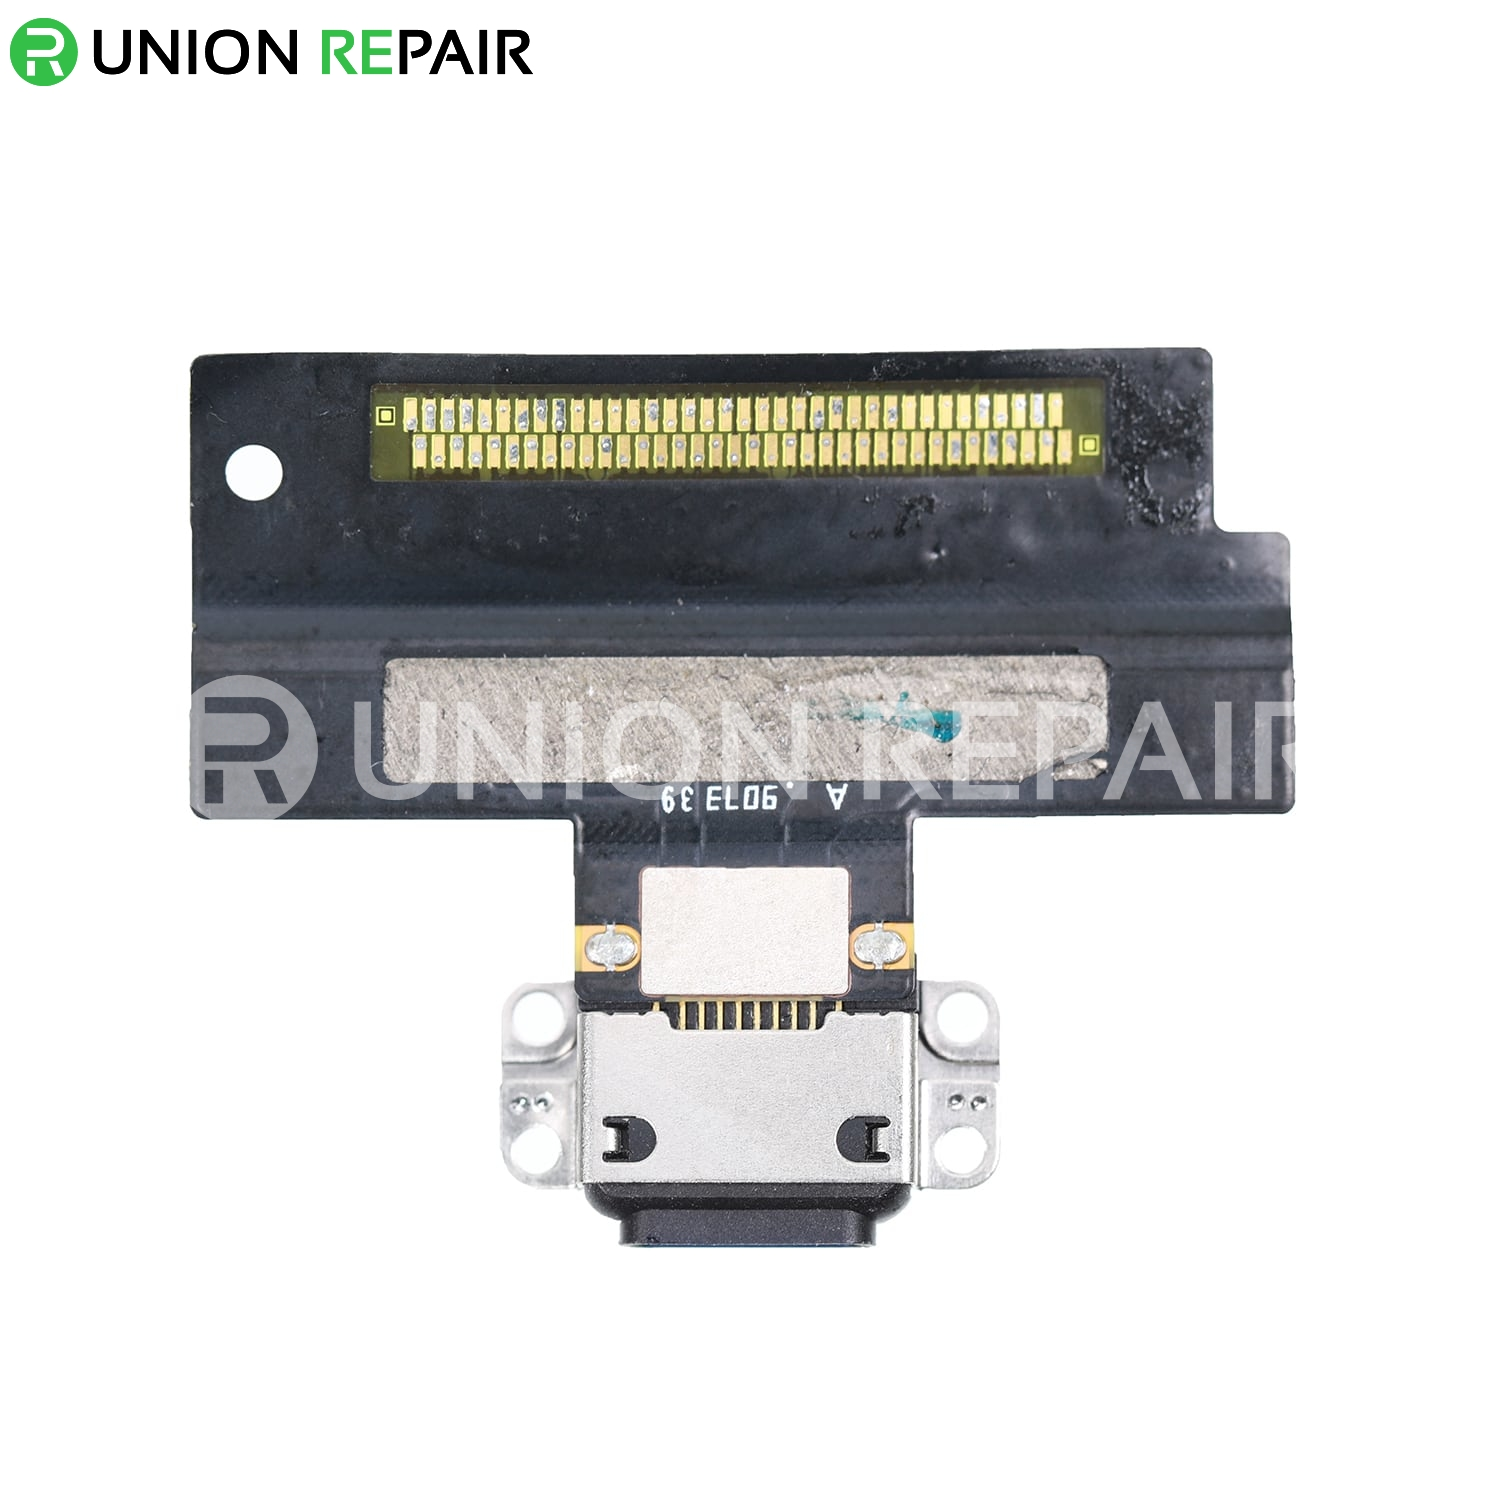 Replacement for iPad Air 3 Charging Connector Flex Cable - Black